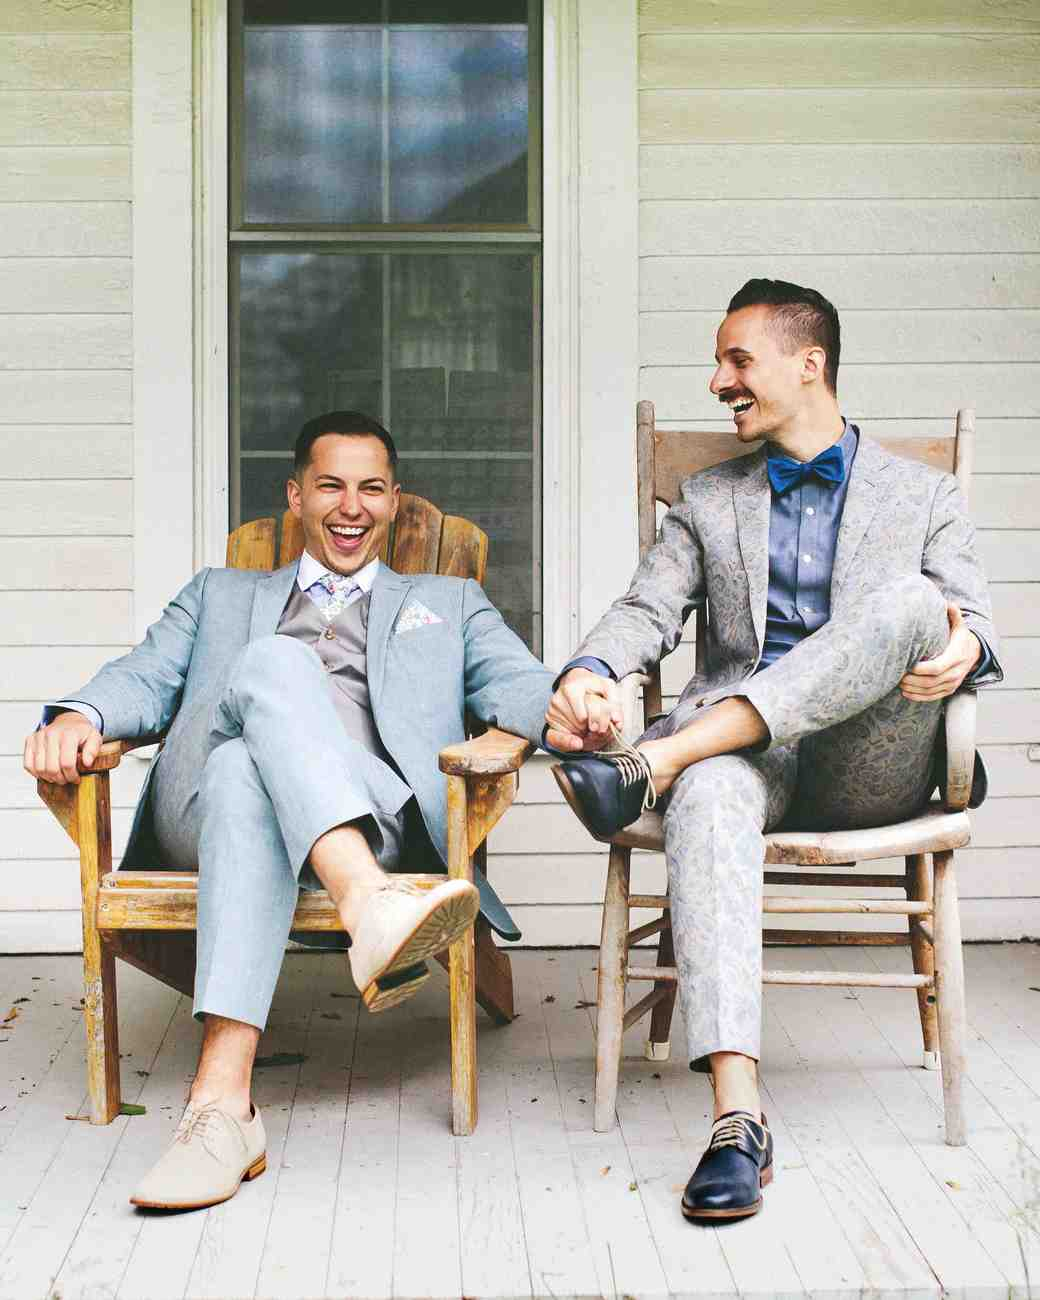 chase-drew-real-wedding-grooms-portrait-on-porch.jpg